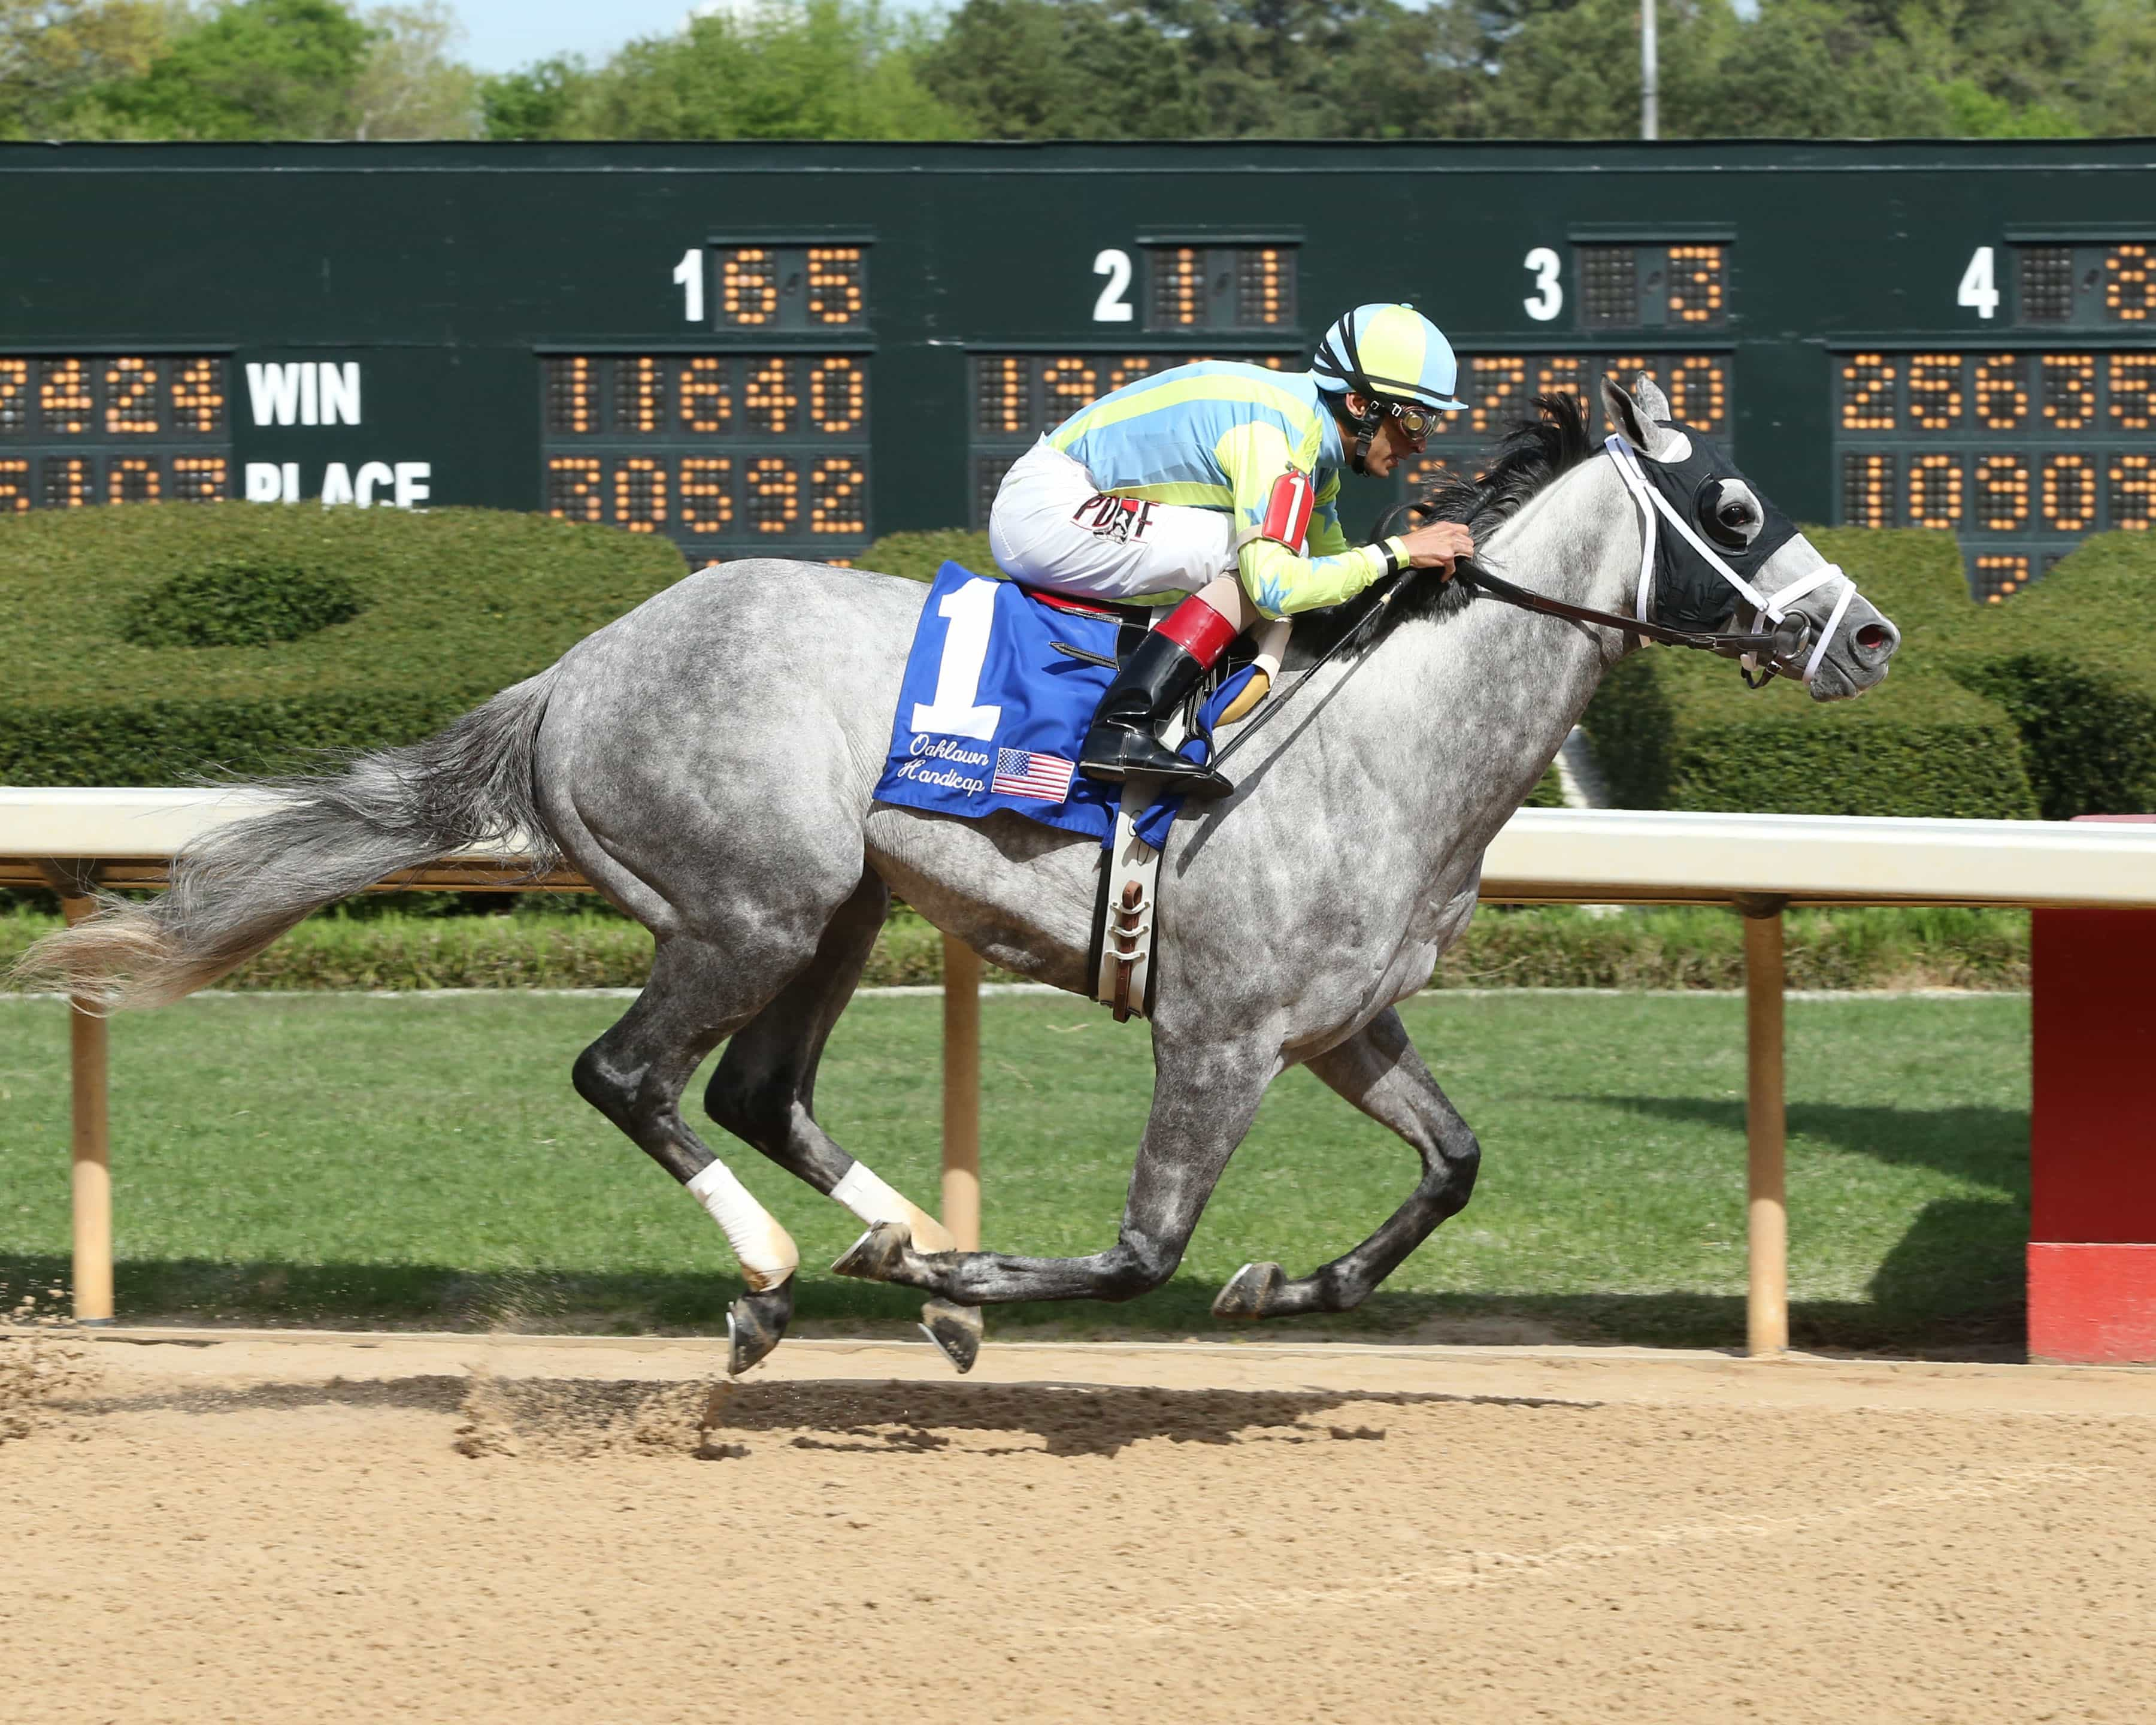 Race Day - THE OAKLAWN HANDICAP 69th Running (Grade II) - 04-11-15 - R07 - OP - 101 - Photo credit: Oaklawn/Coady Photography